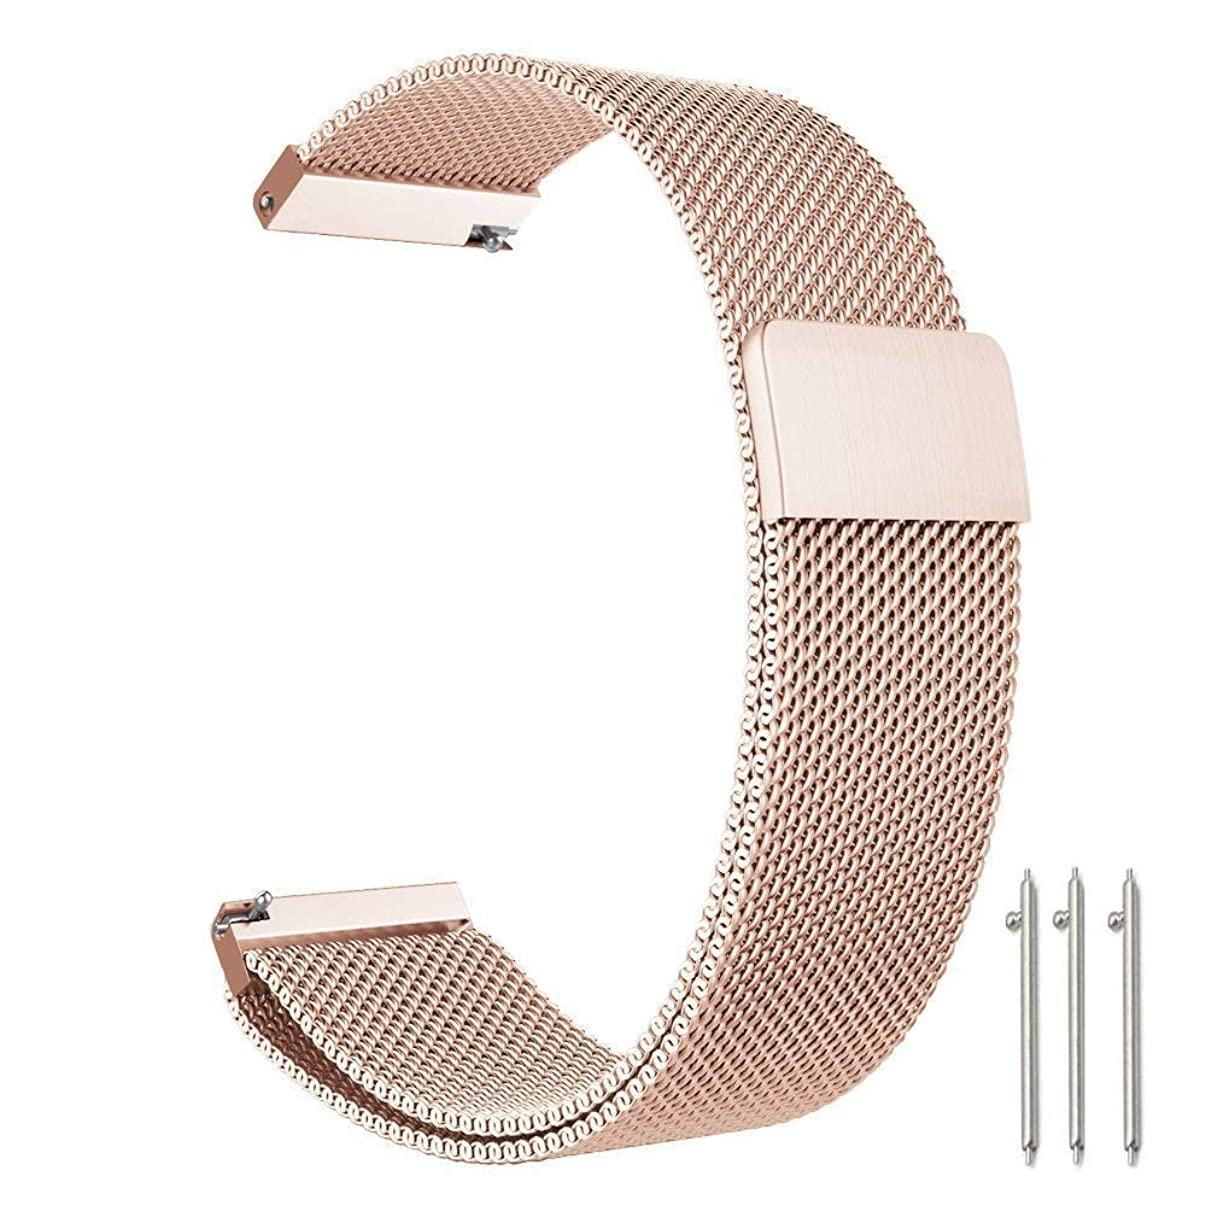 Cooldot Compatible with Fossil Band, 18mm Stainless Steel Loop Mesh Metal Strap, Replacement for Fossil Gen 4 Q Venture HR/Gen 3 Q Venture Smartwatch (18mm,Rose Gold)